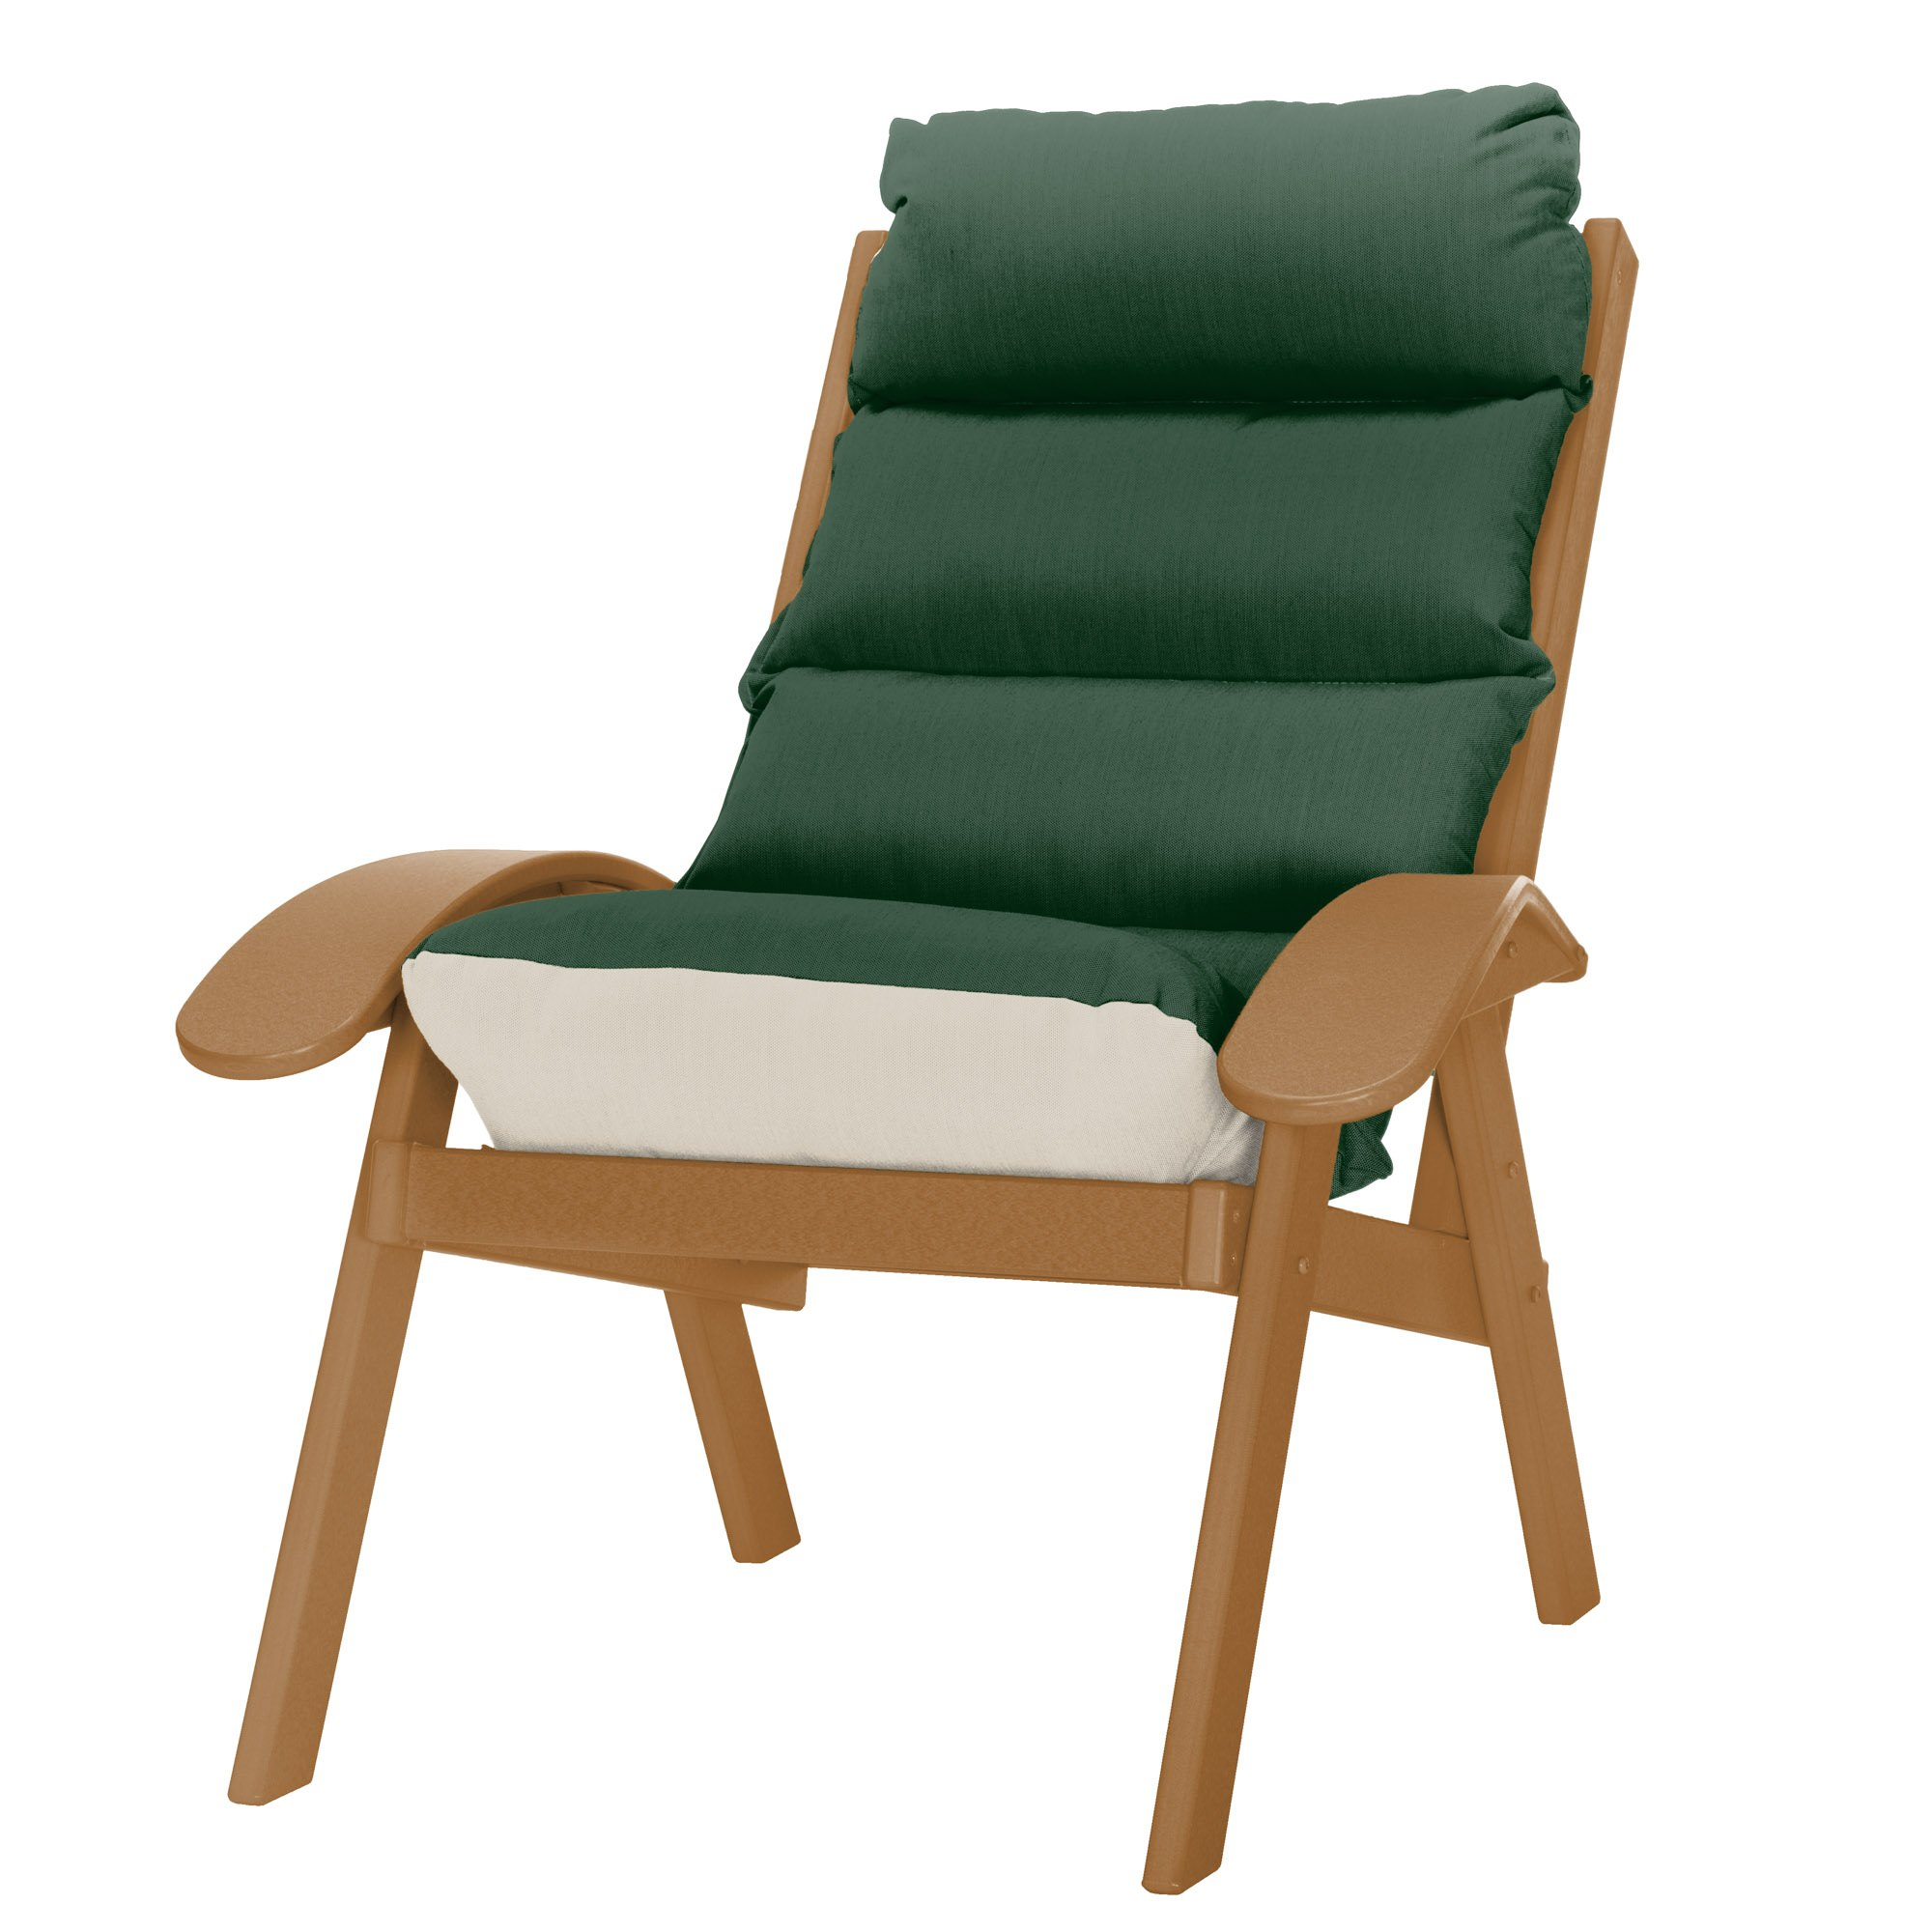 Cushion Sale Coastal Cedar Cushion Chair On Sale Shop Patio Furniture